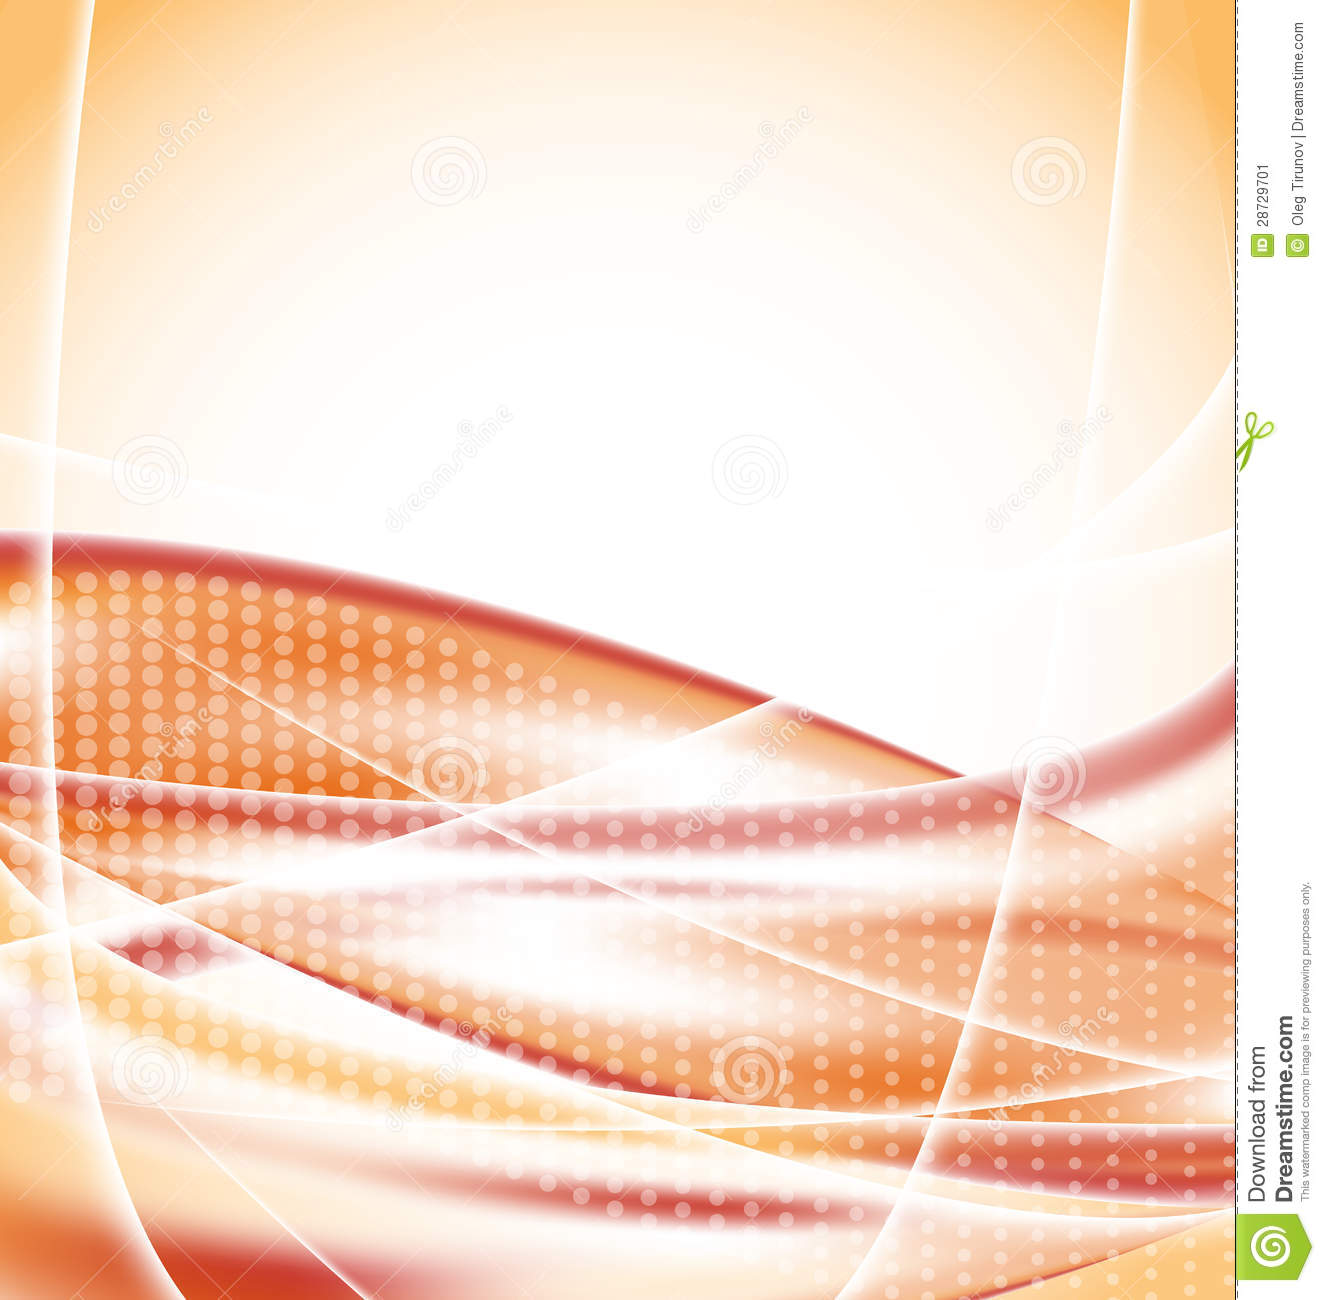 Abstract Orange Background, Design Template Stock Image - Image ...